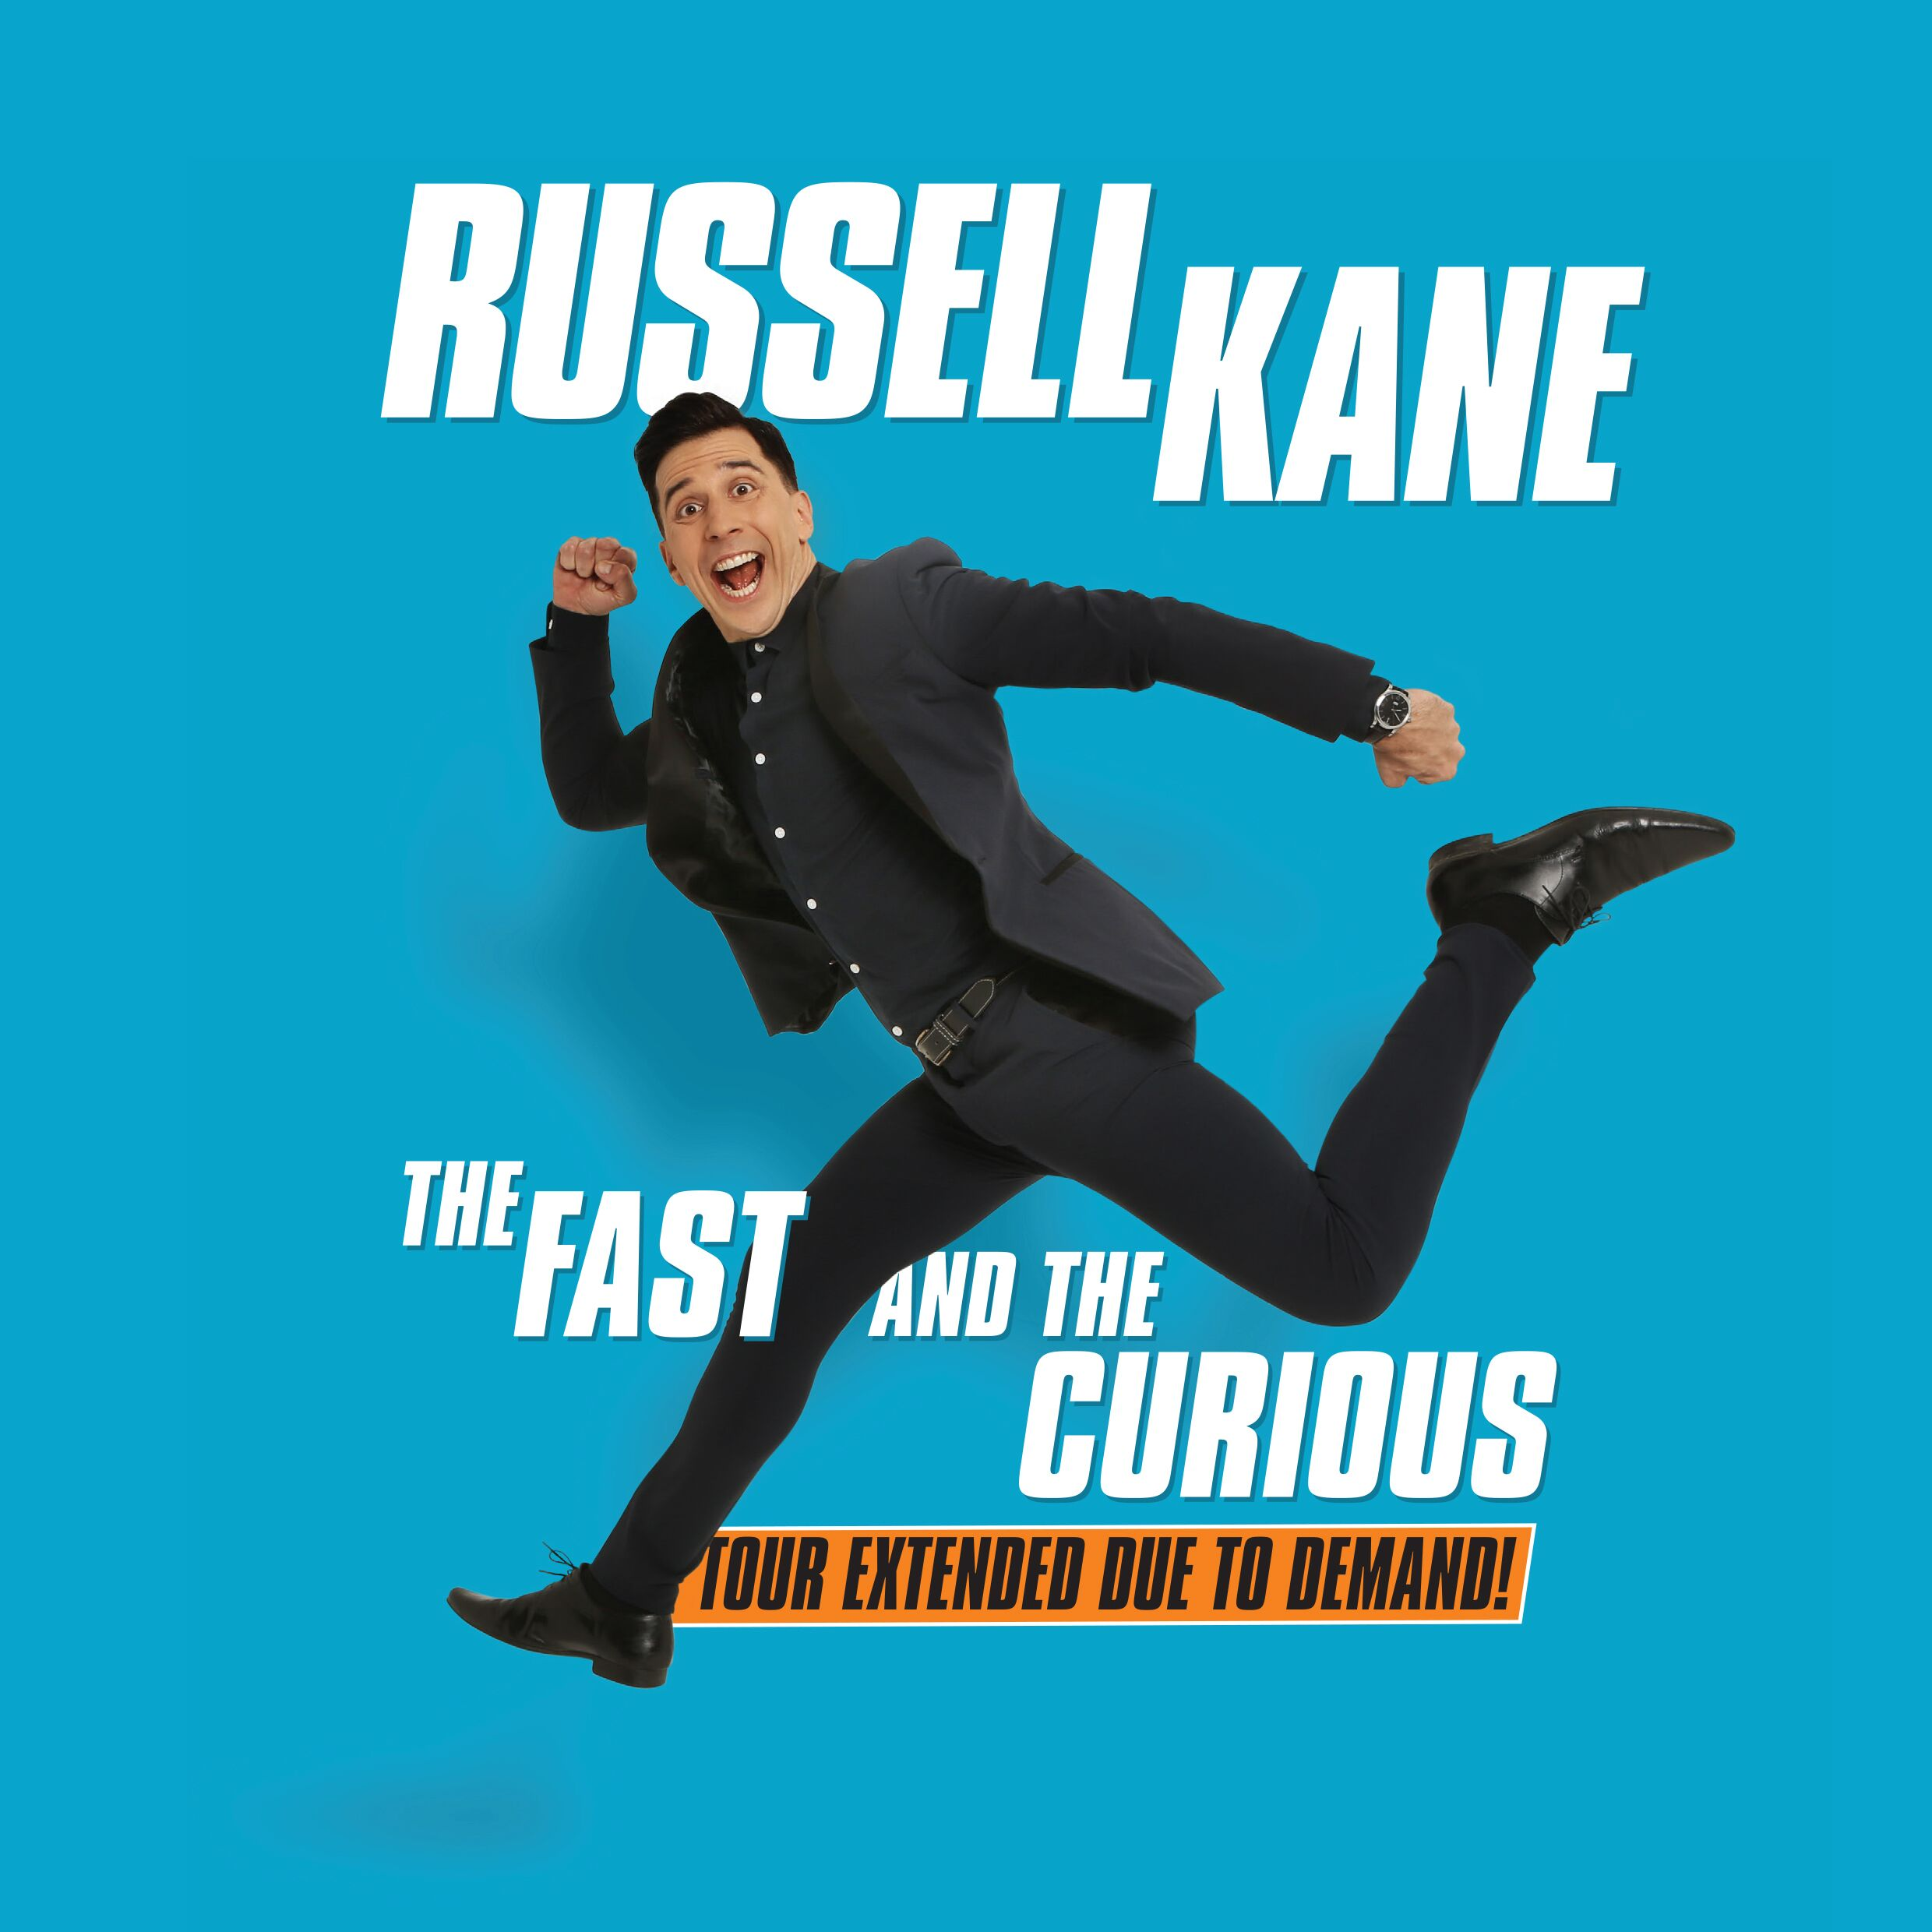 russell kane tour loughborough